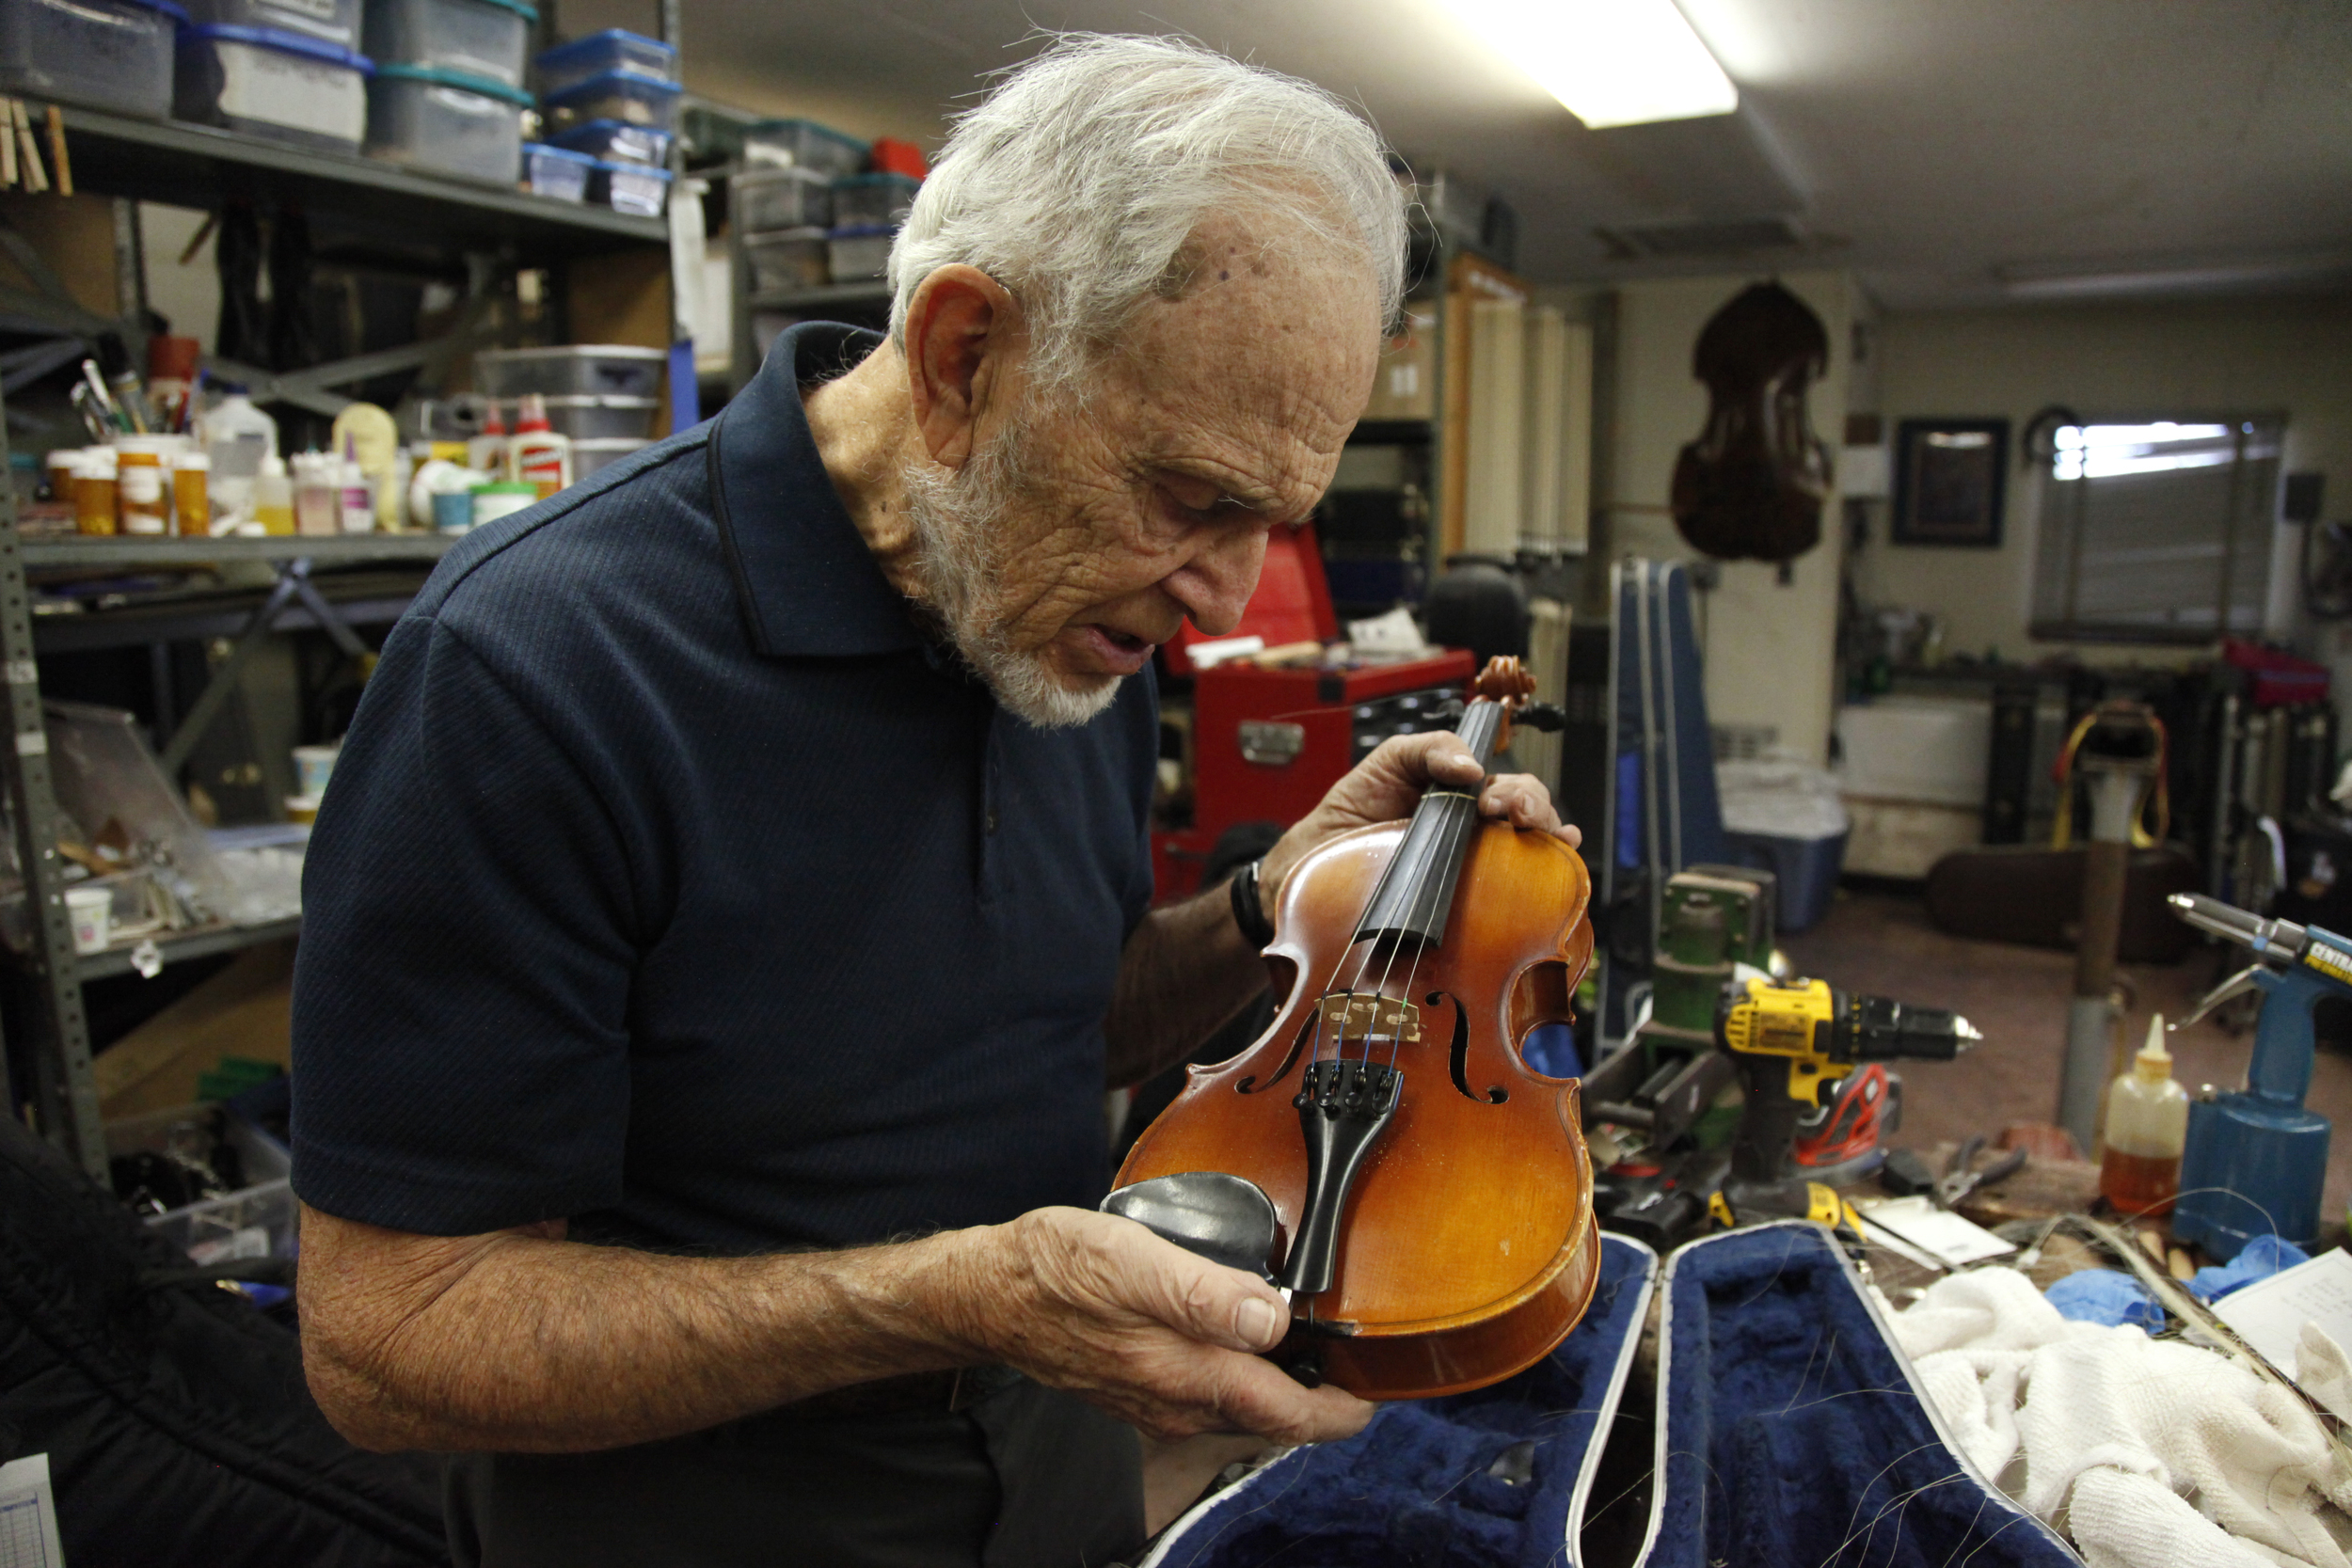 Ned Bloomfield inspects a violin in the Tucson Unified School District's instrument repair shop on December 17, 2015.